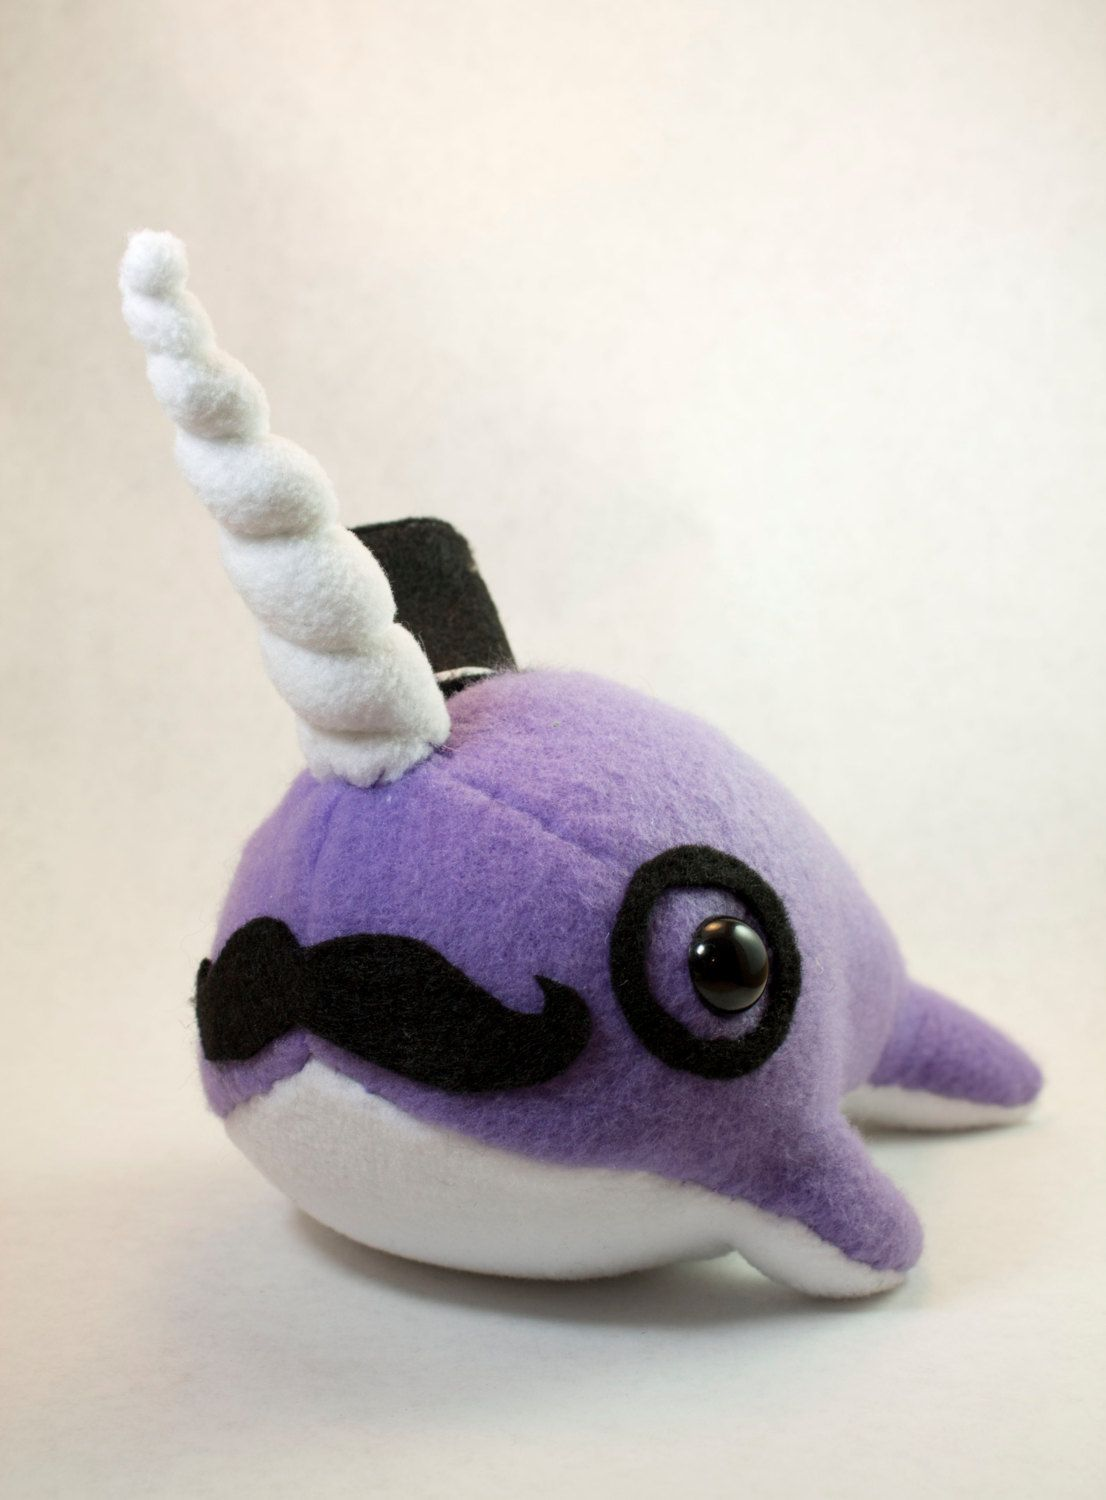 Narwhal Plush with Mustache, Tophat, and Monocle (Choose